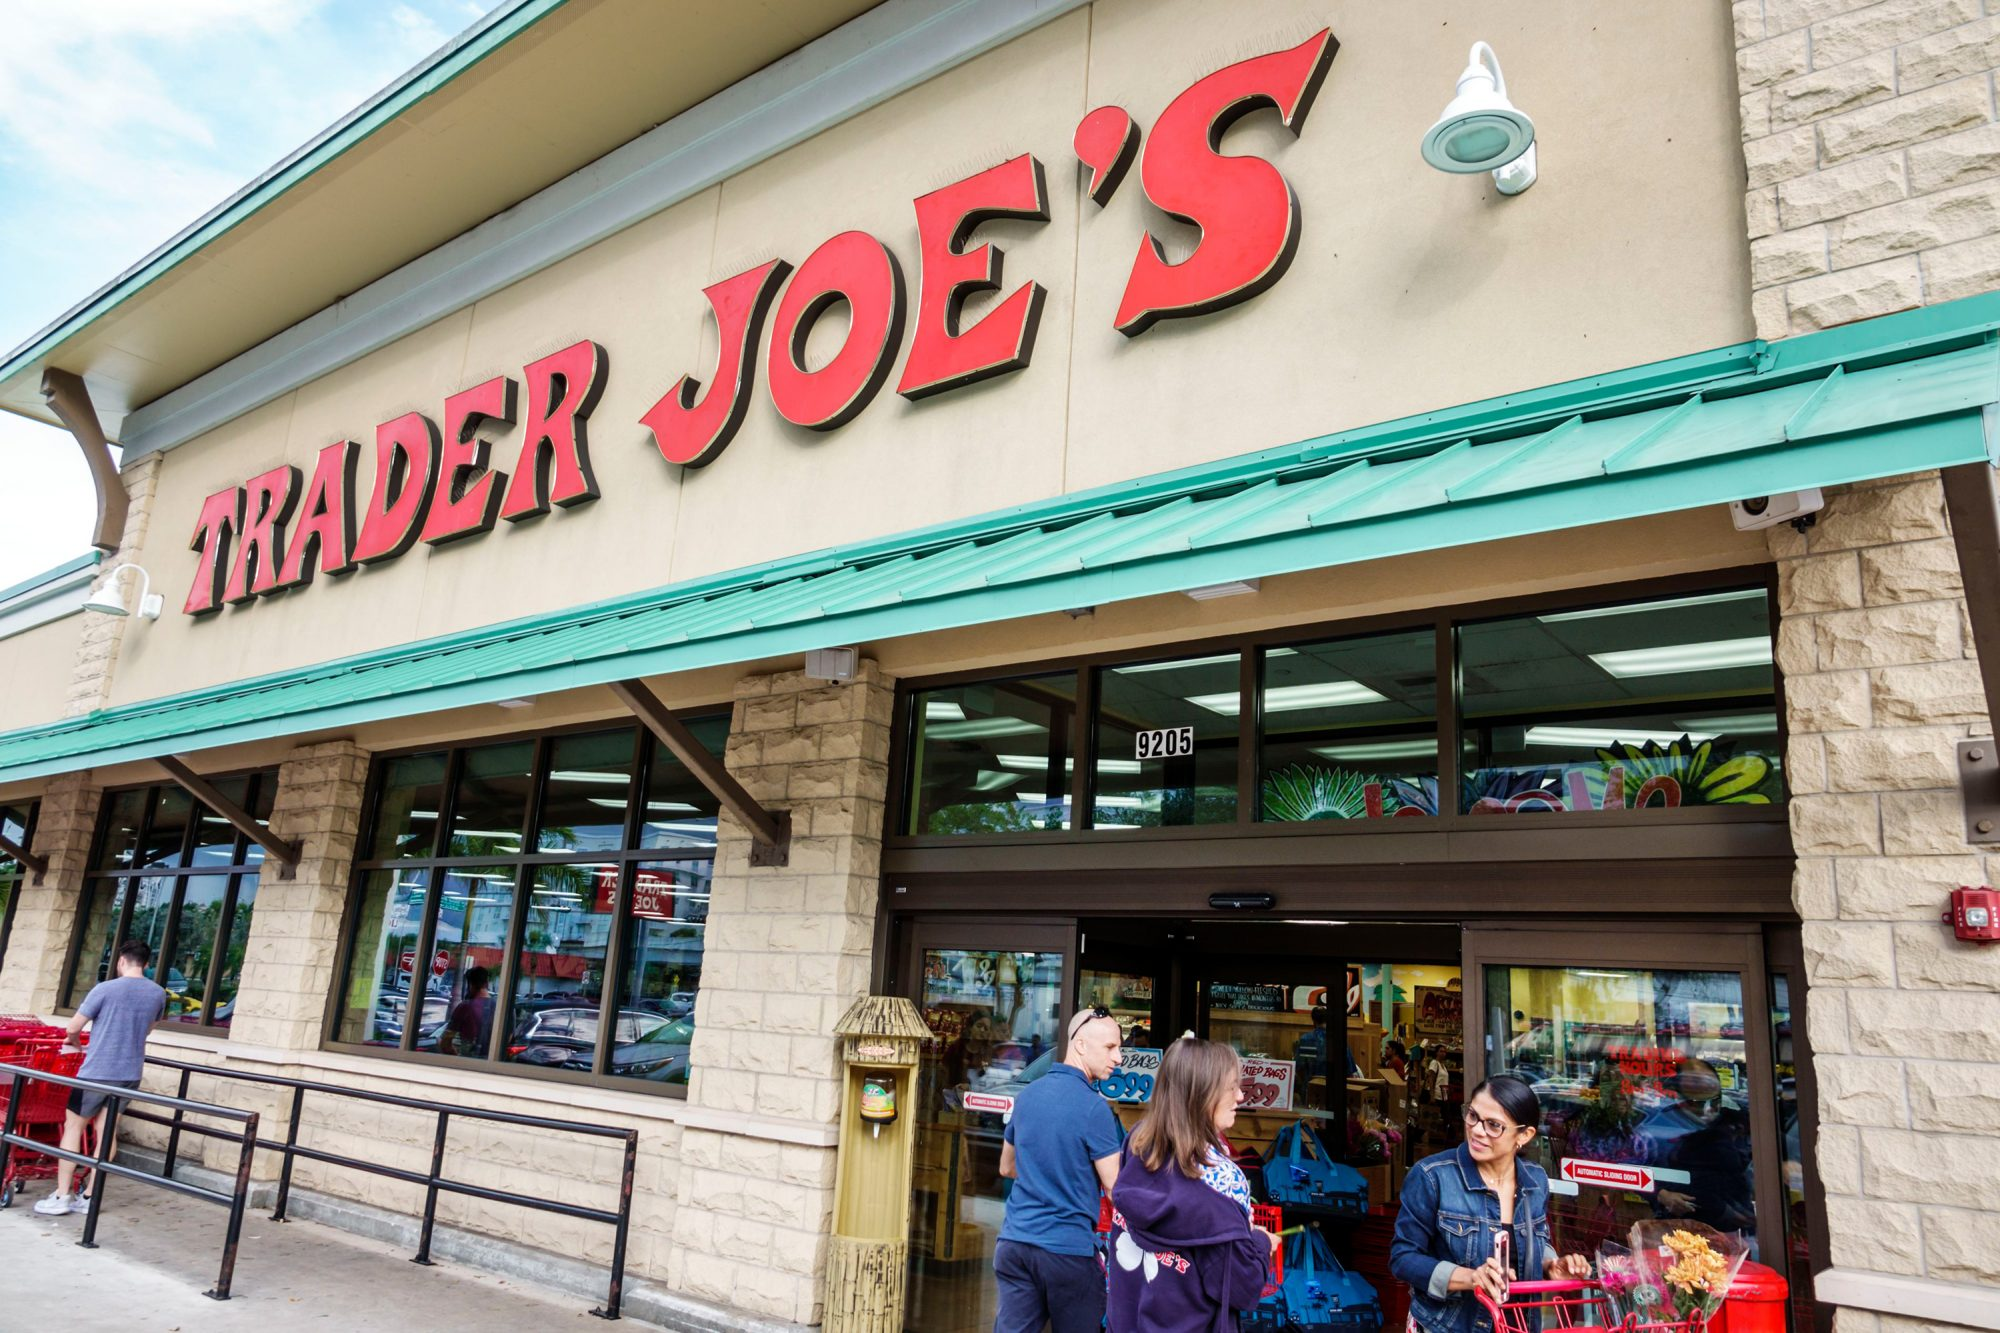 people standing in front of a trader joe's store